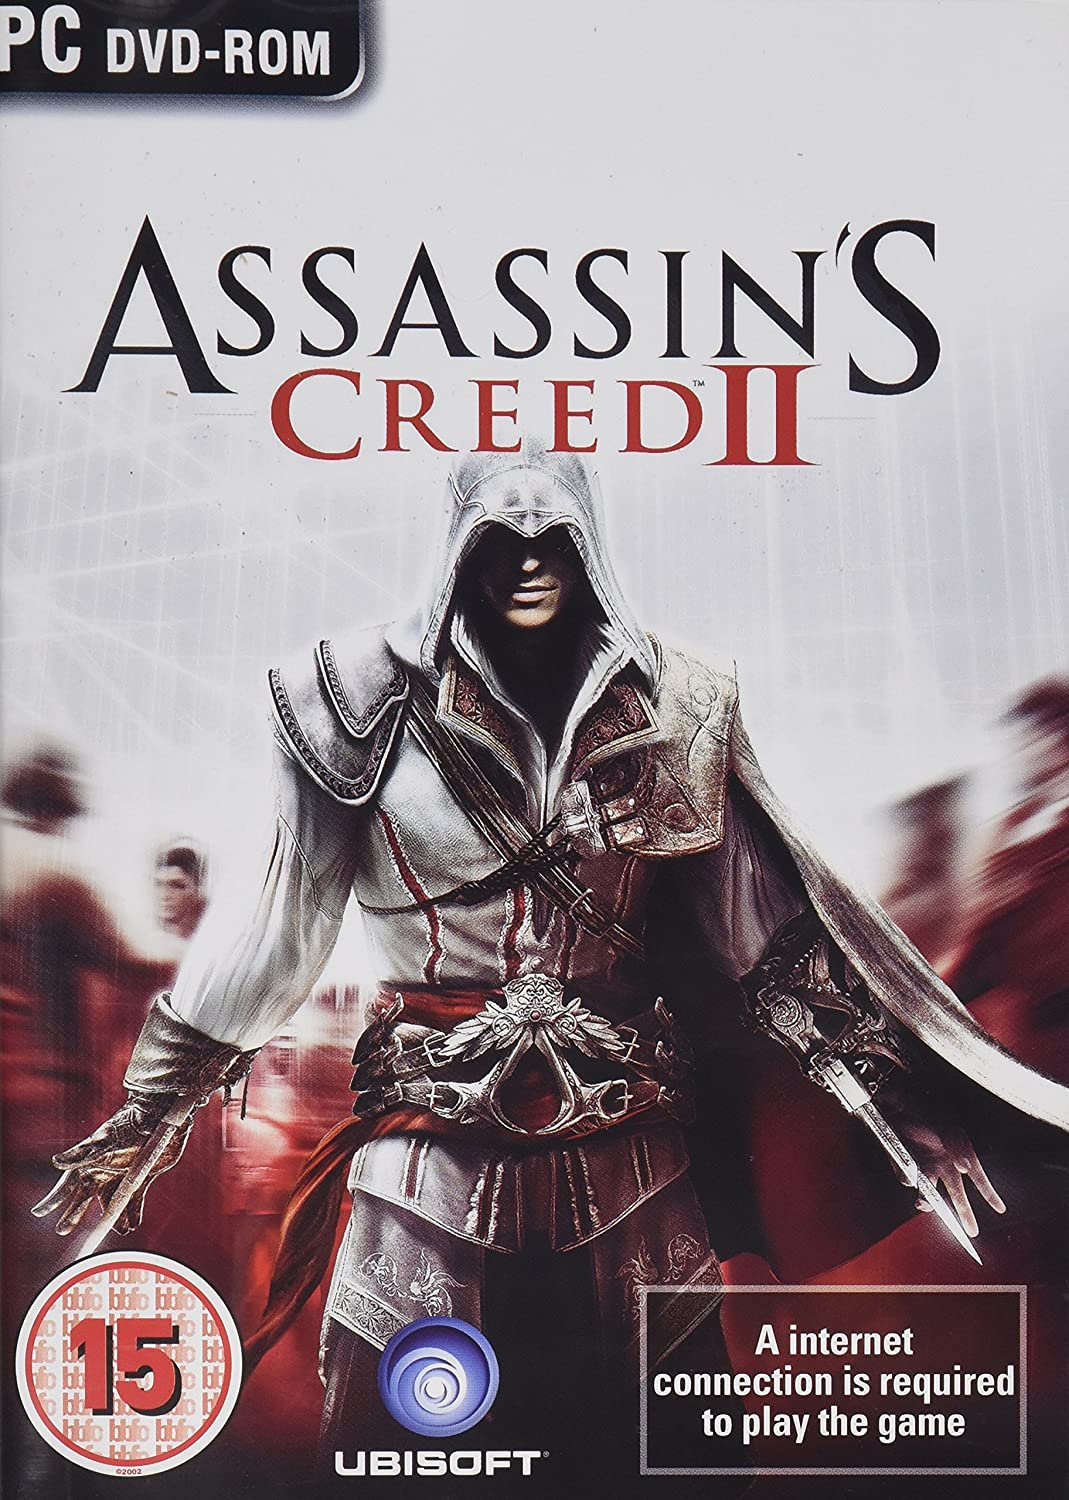 Pccd assassin's creed ii (eu) B0067UA0AM Parent